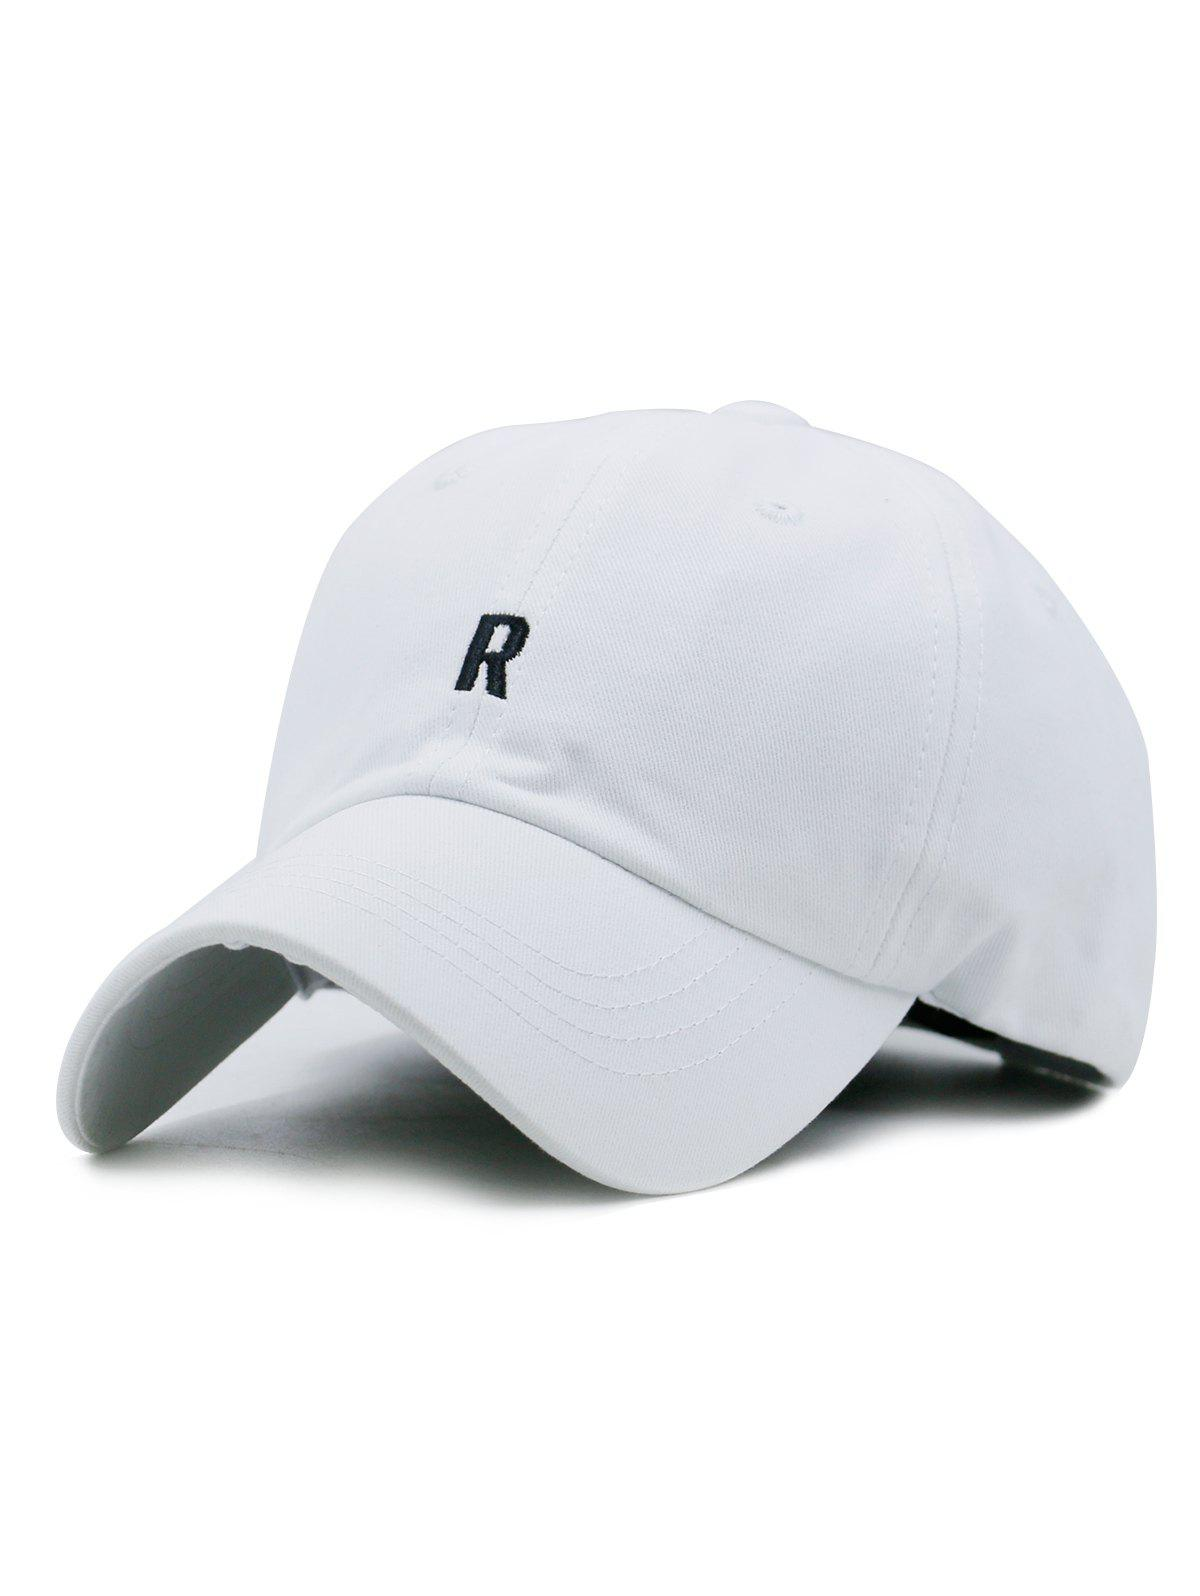 Store Letter R Embroidery Adjustable Baseball Hat